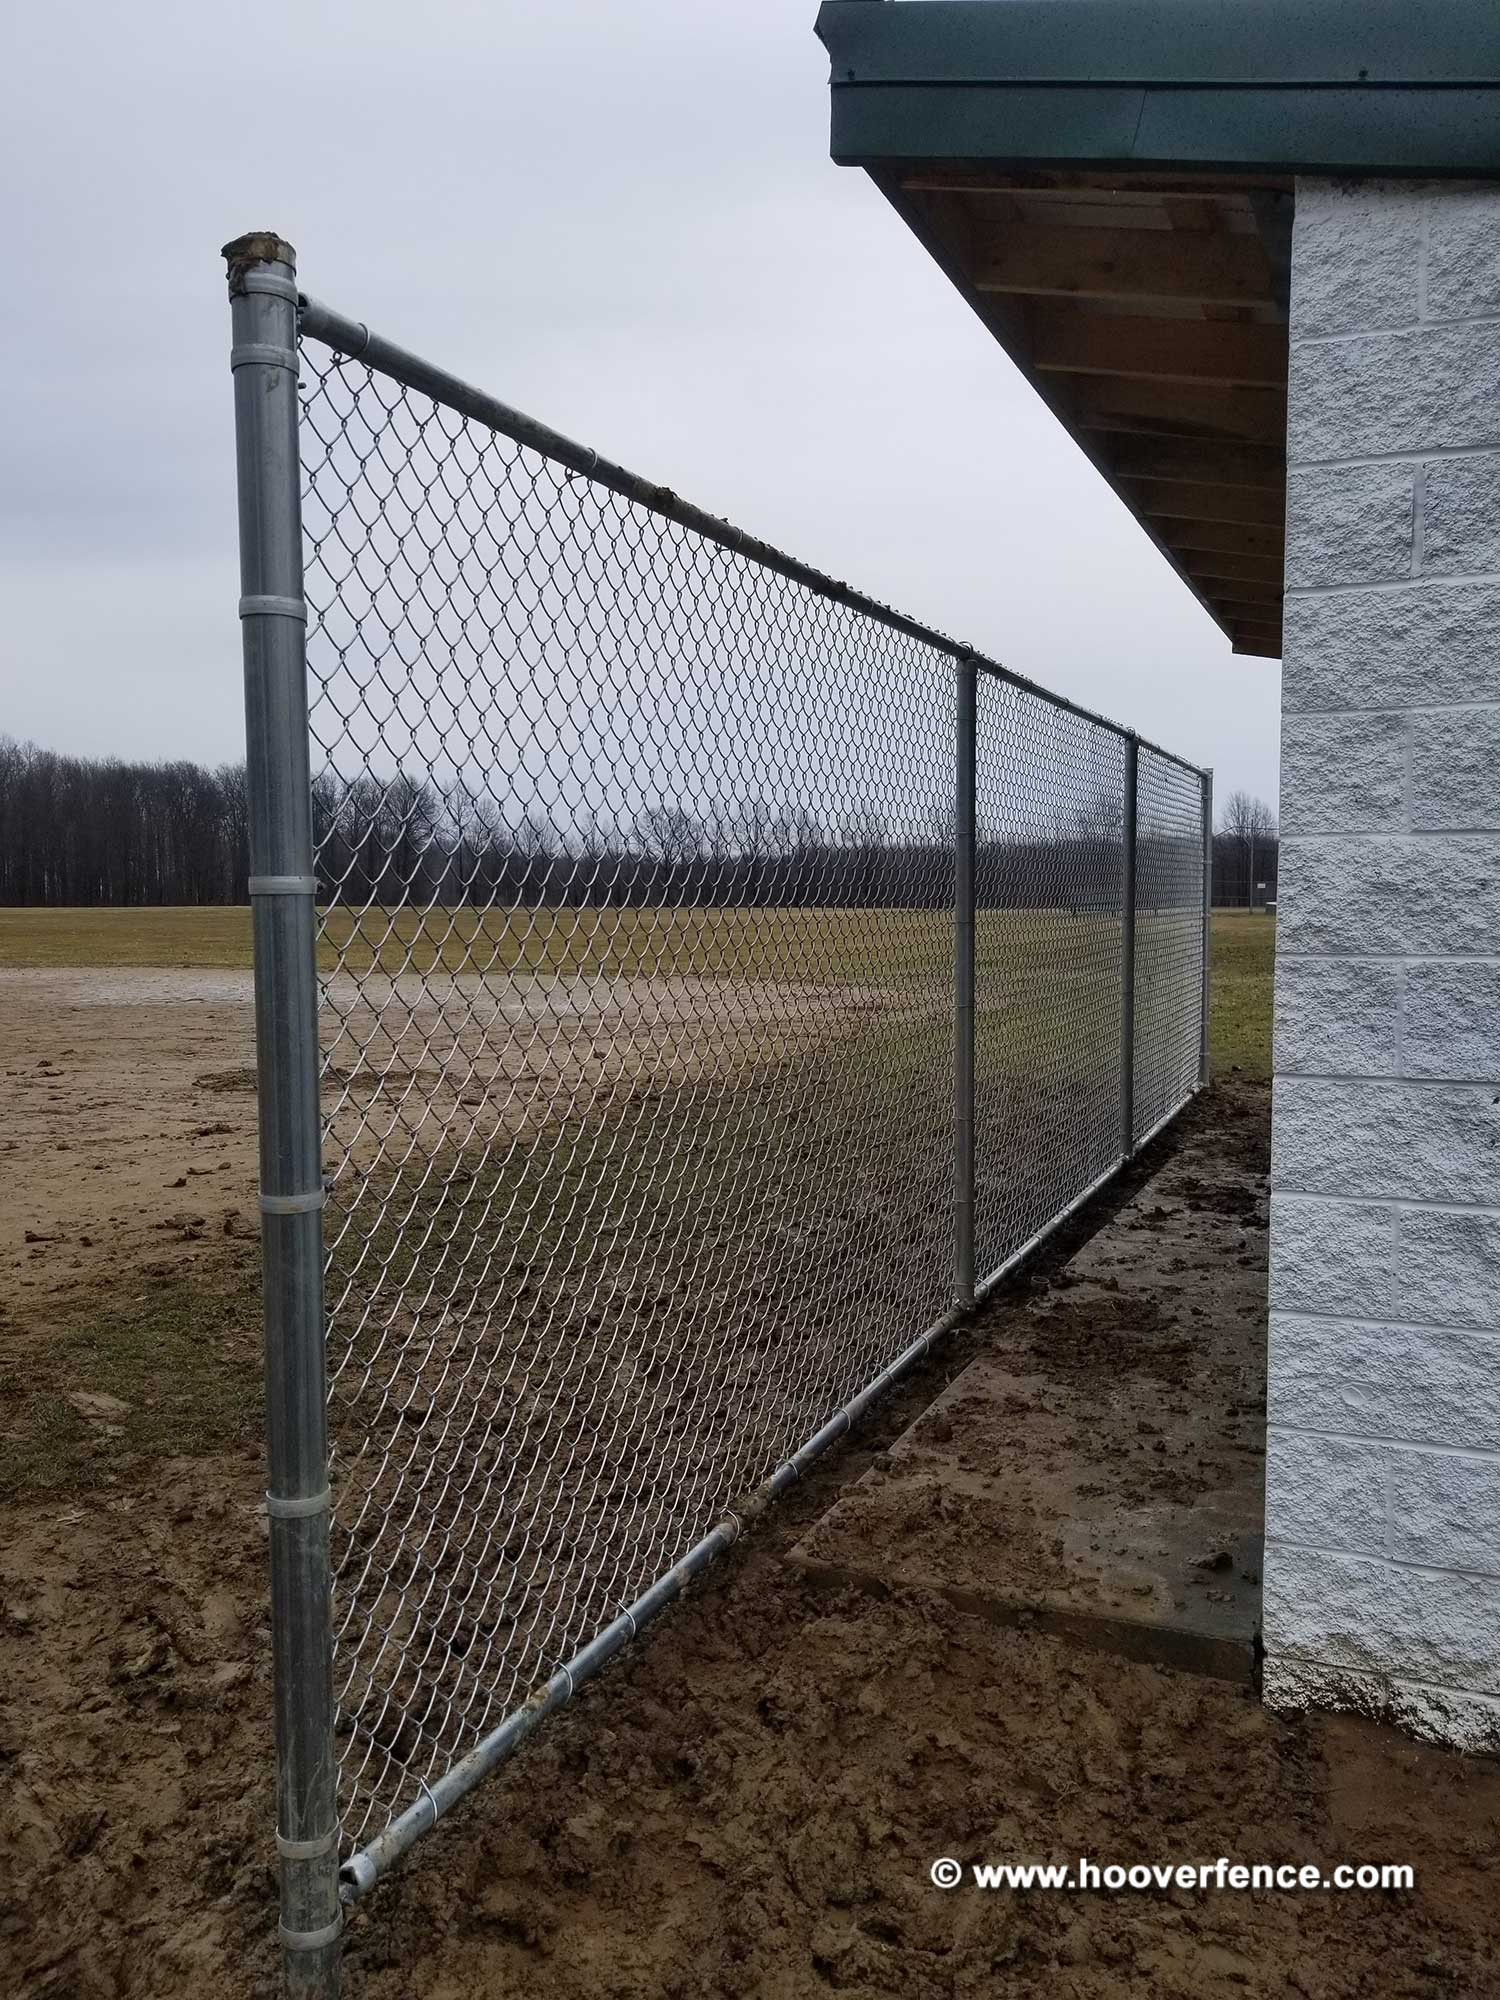 7' High Chain Link Sideline Fence Installation - Edinburg, Ohio